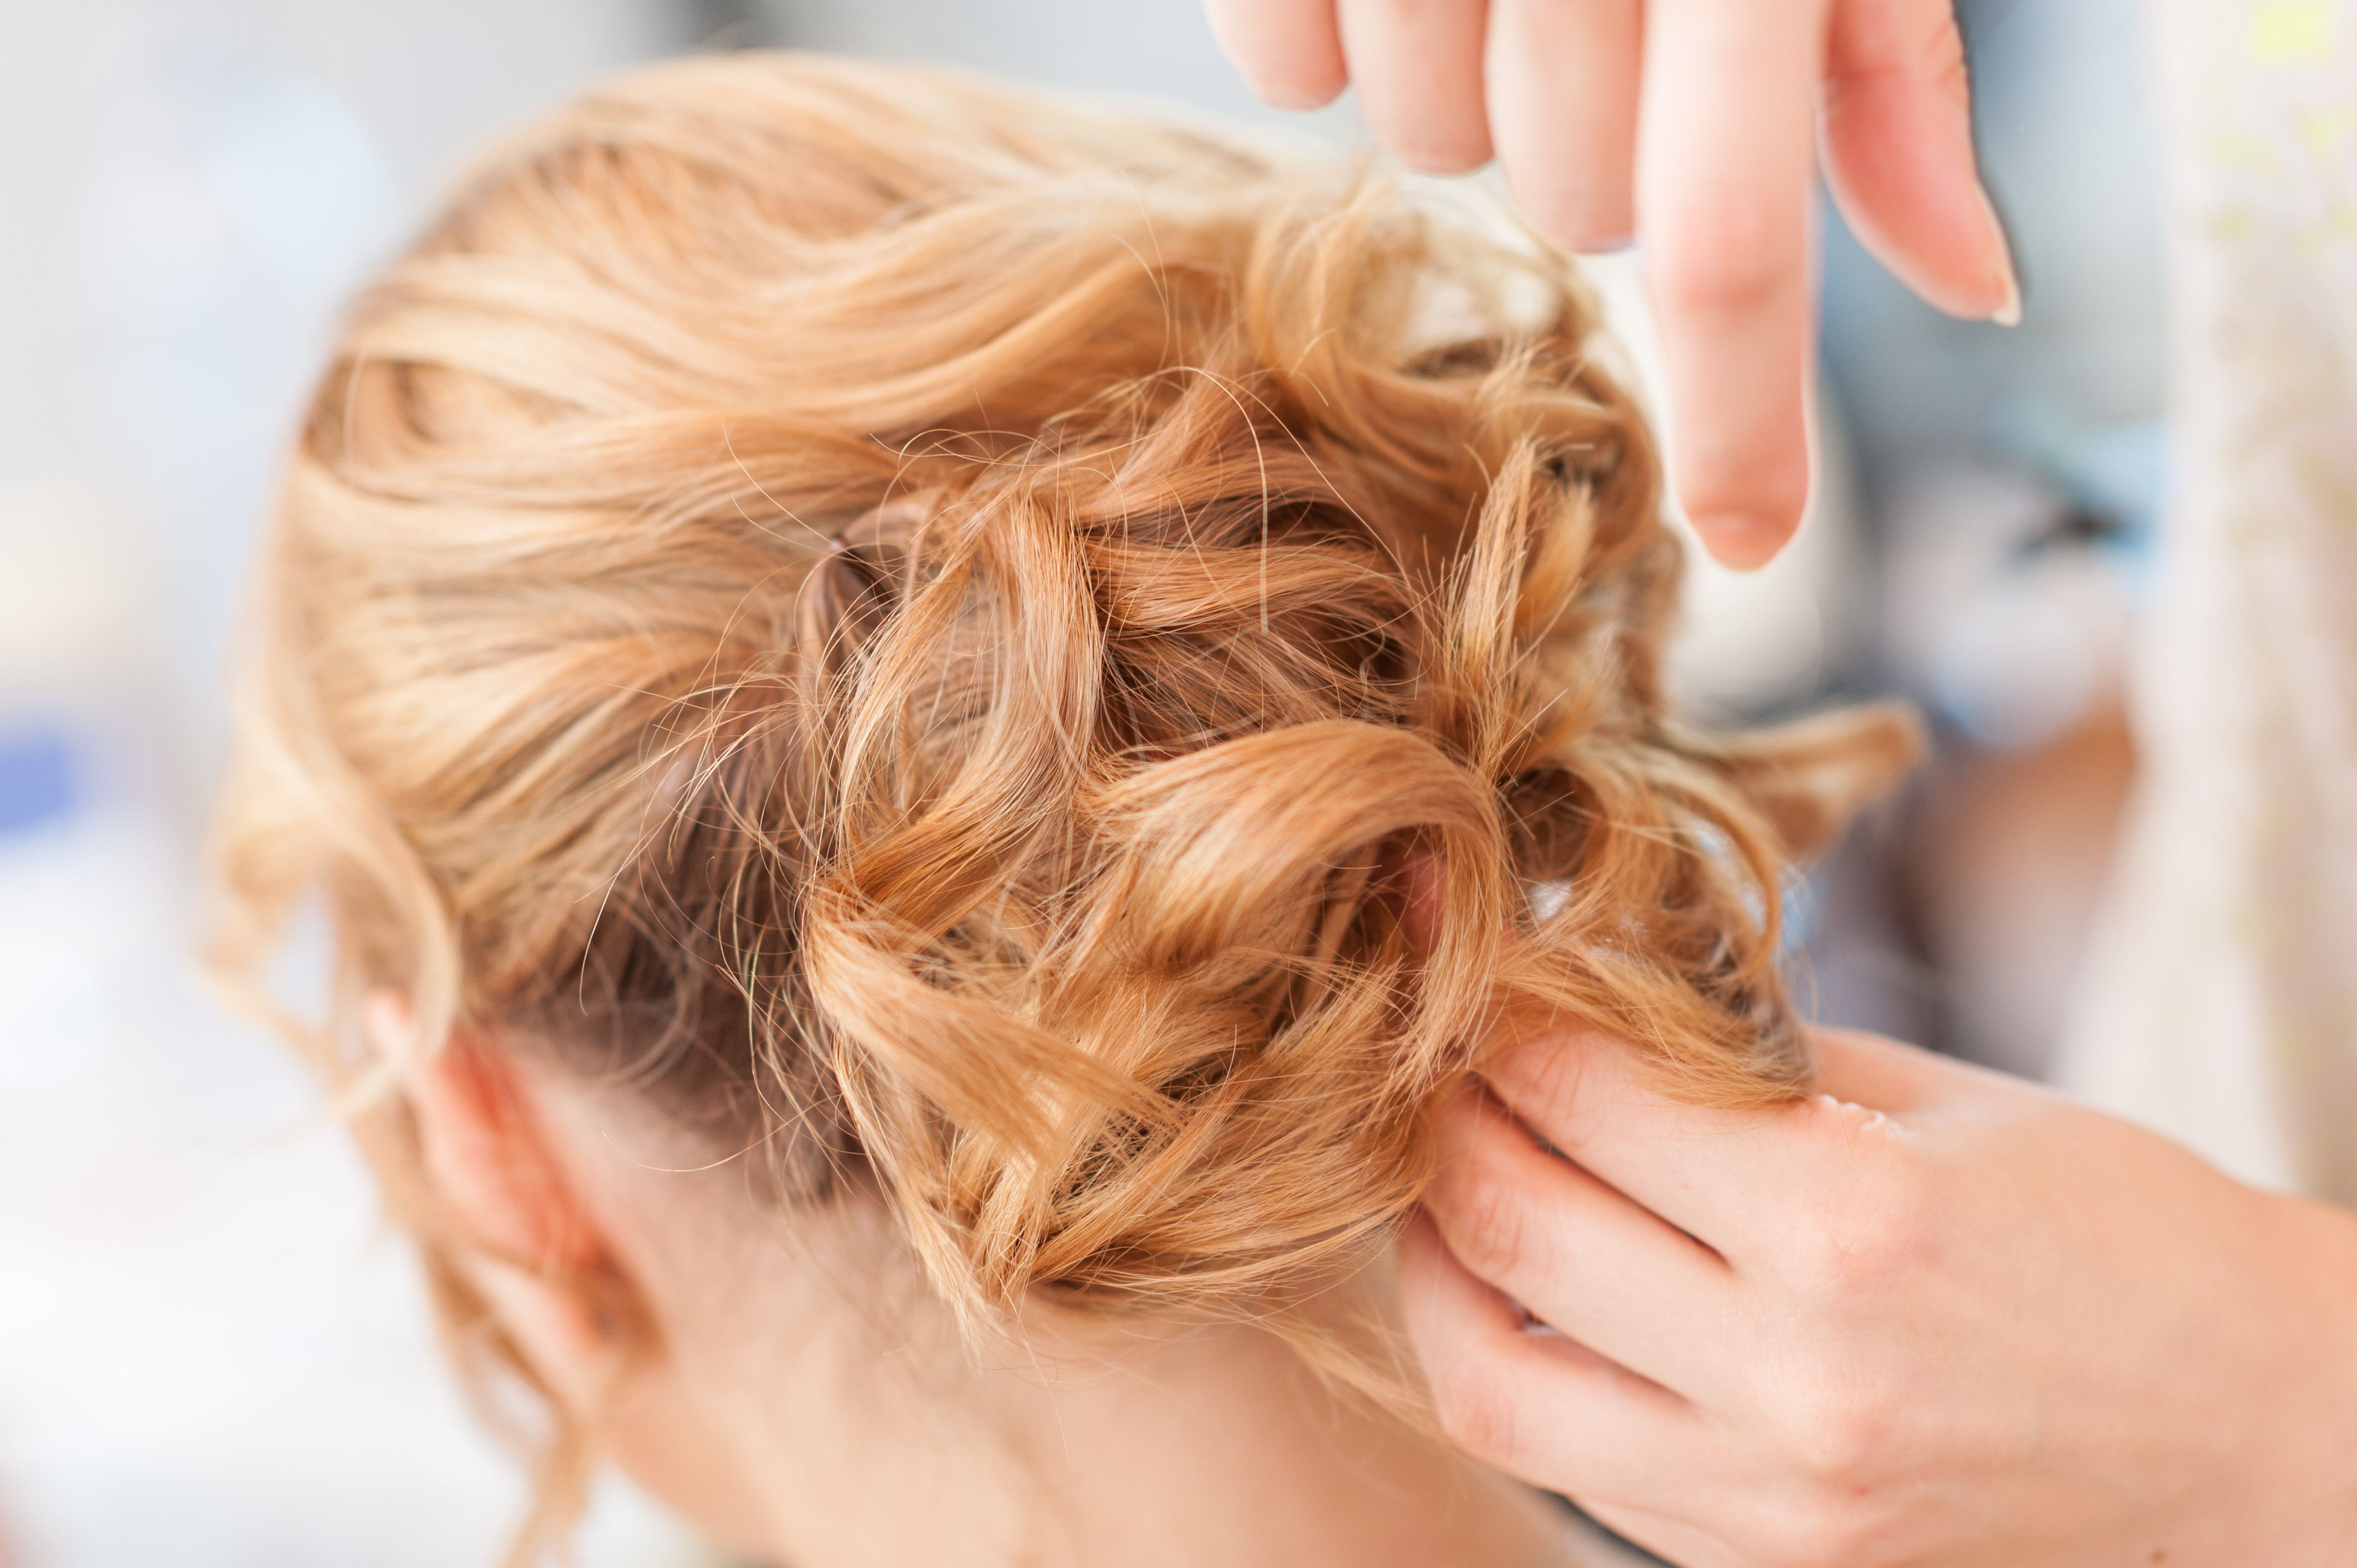 Image of a hair stylist inserting hair pins into a model's curled and pulled back hair.